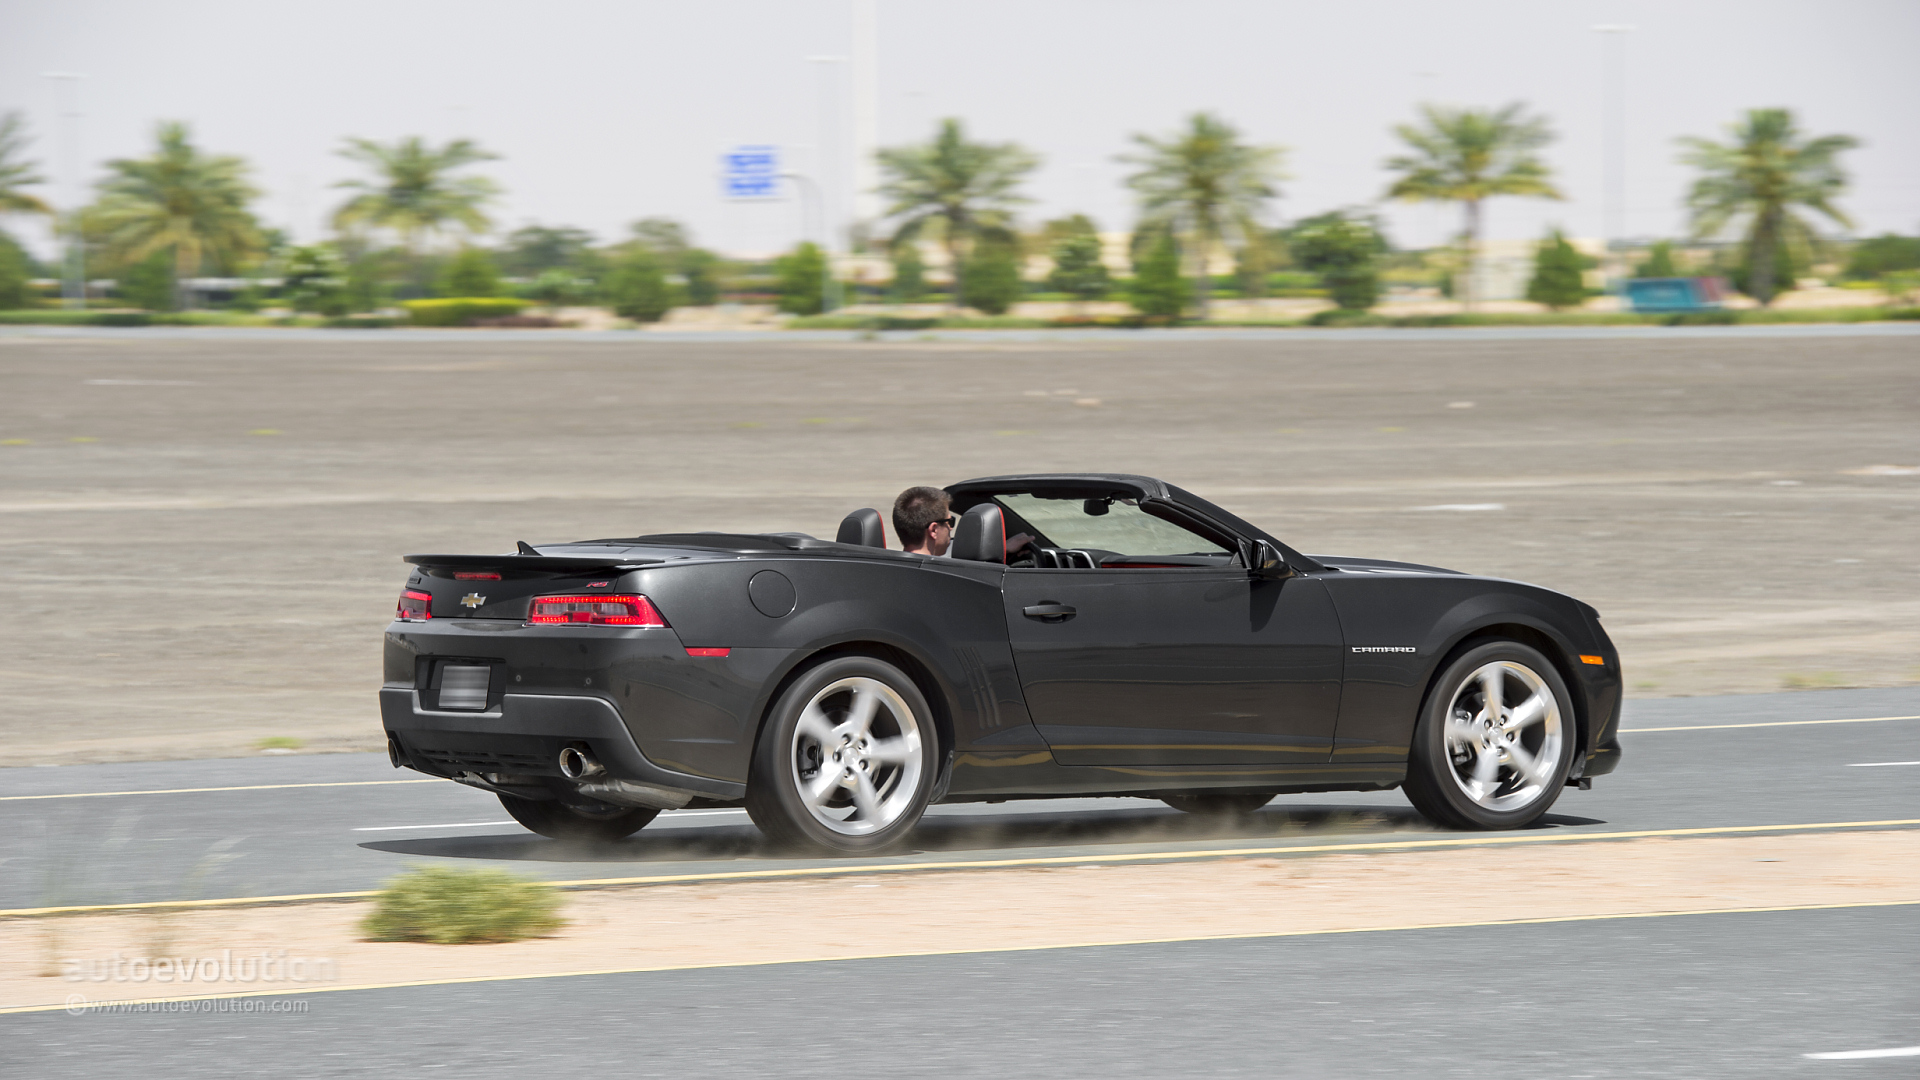 2014 Chevrolet Camaro Rs Convertible Review Autoevolution